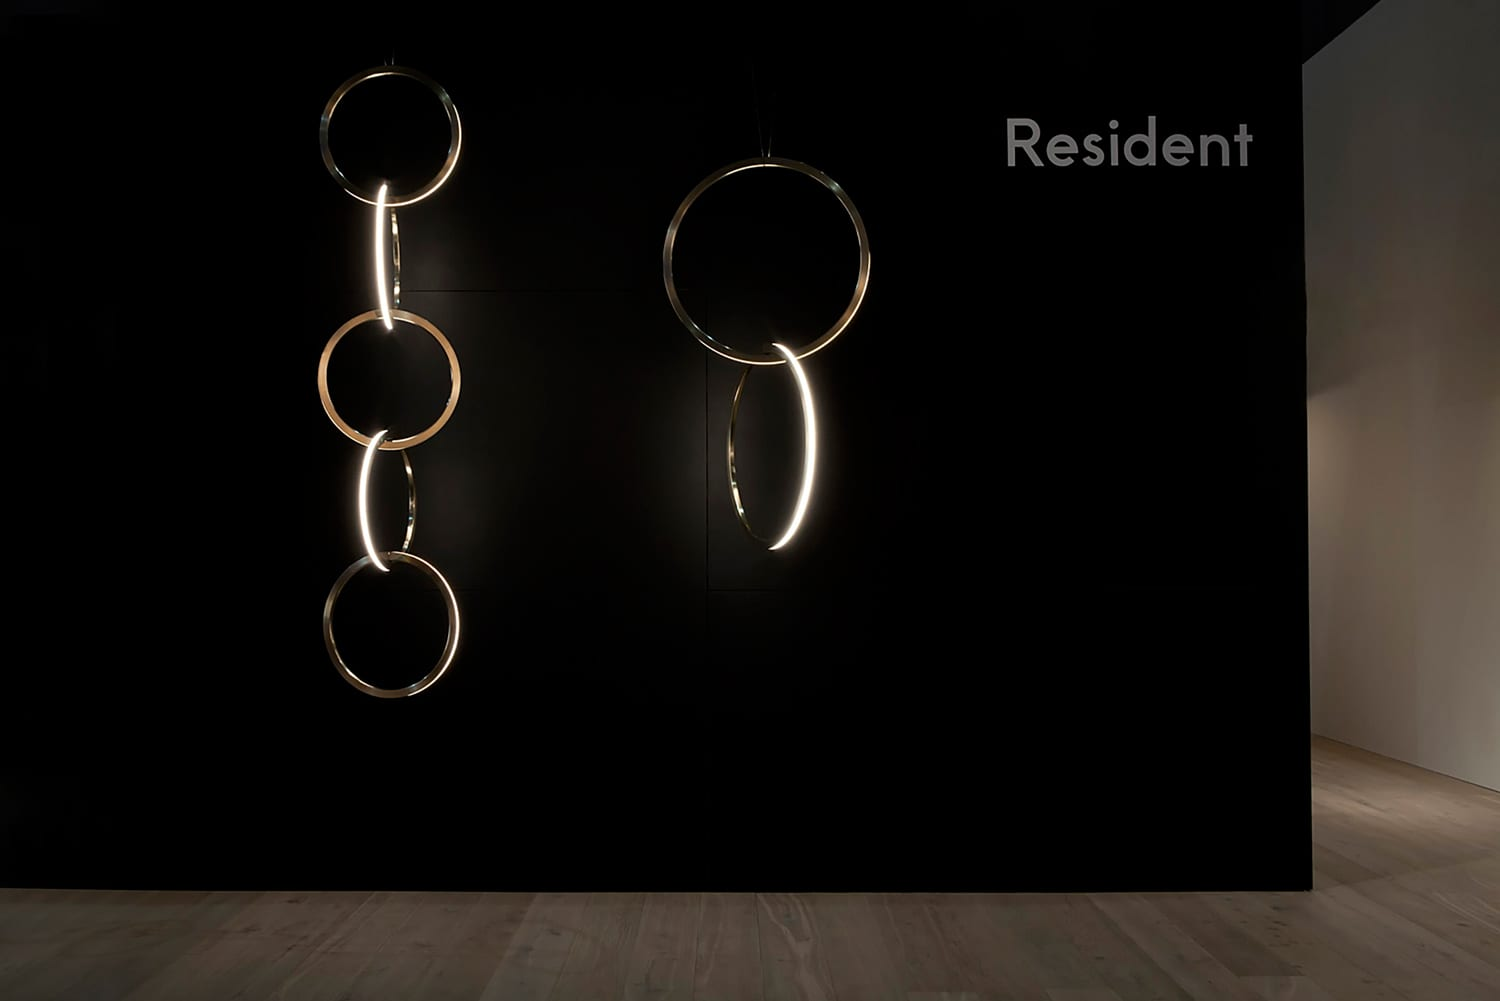 Salone del Mobile 2017 - Resident by Rufus Knight   Yellowtrace